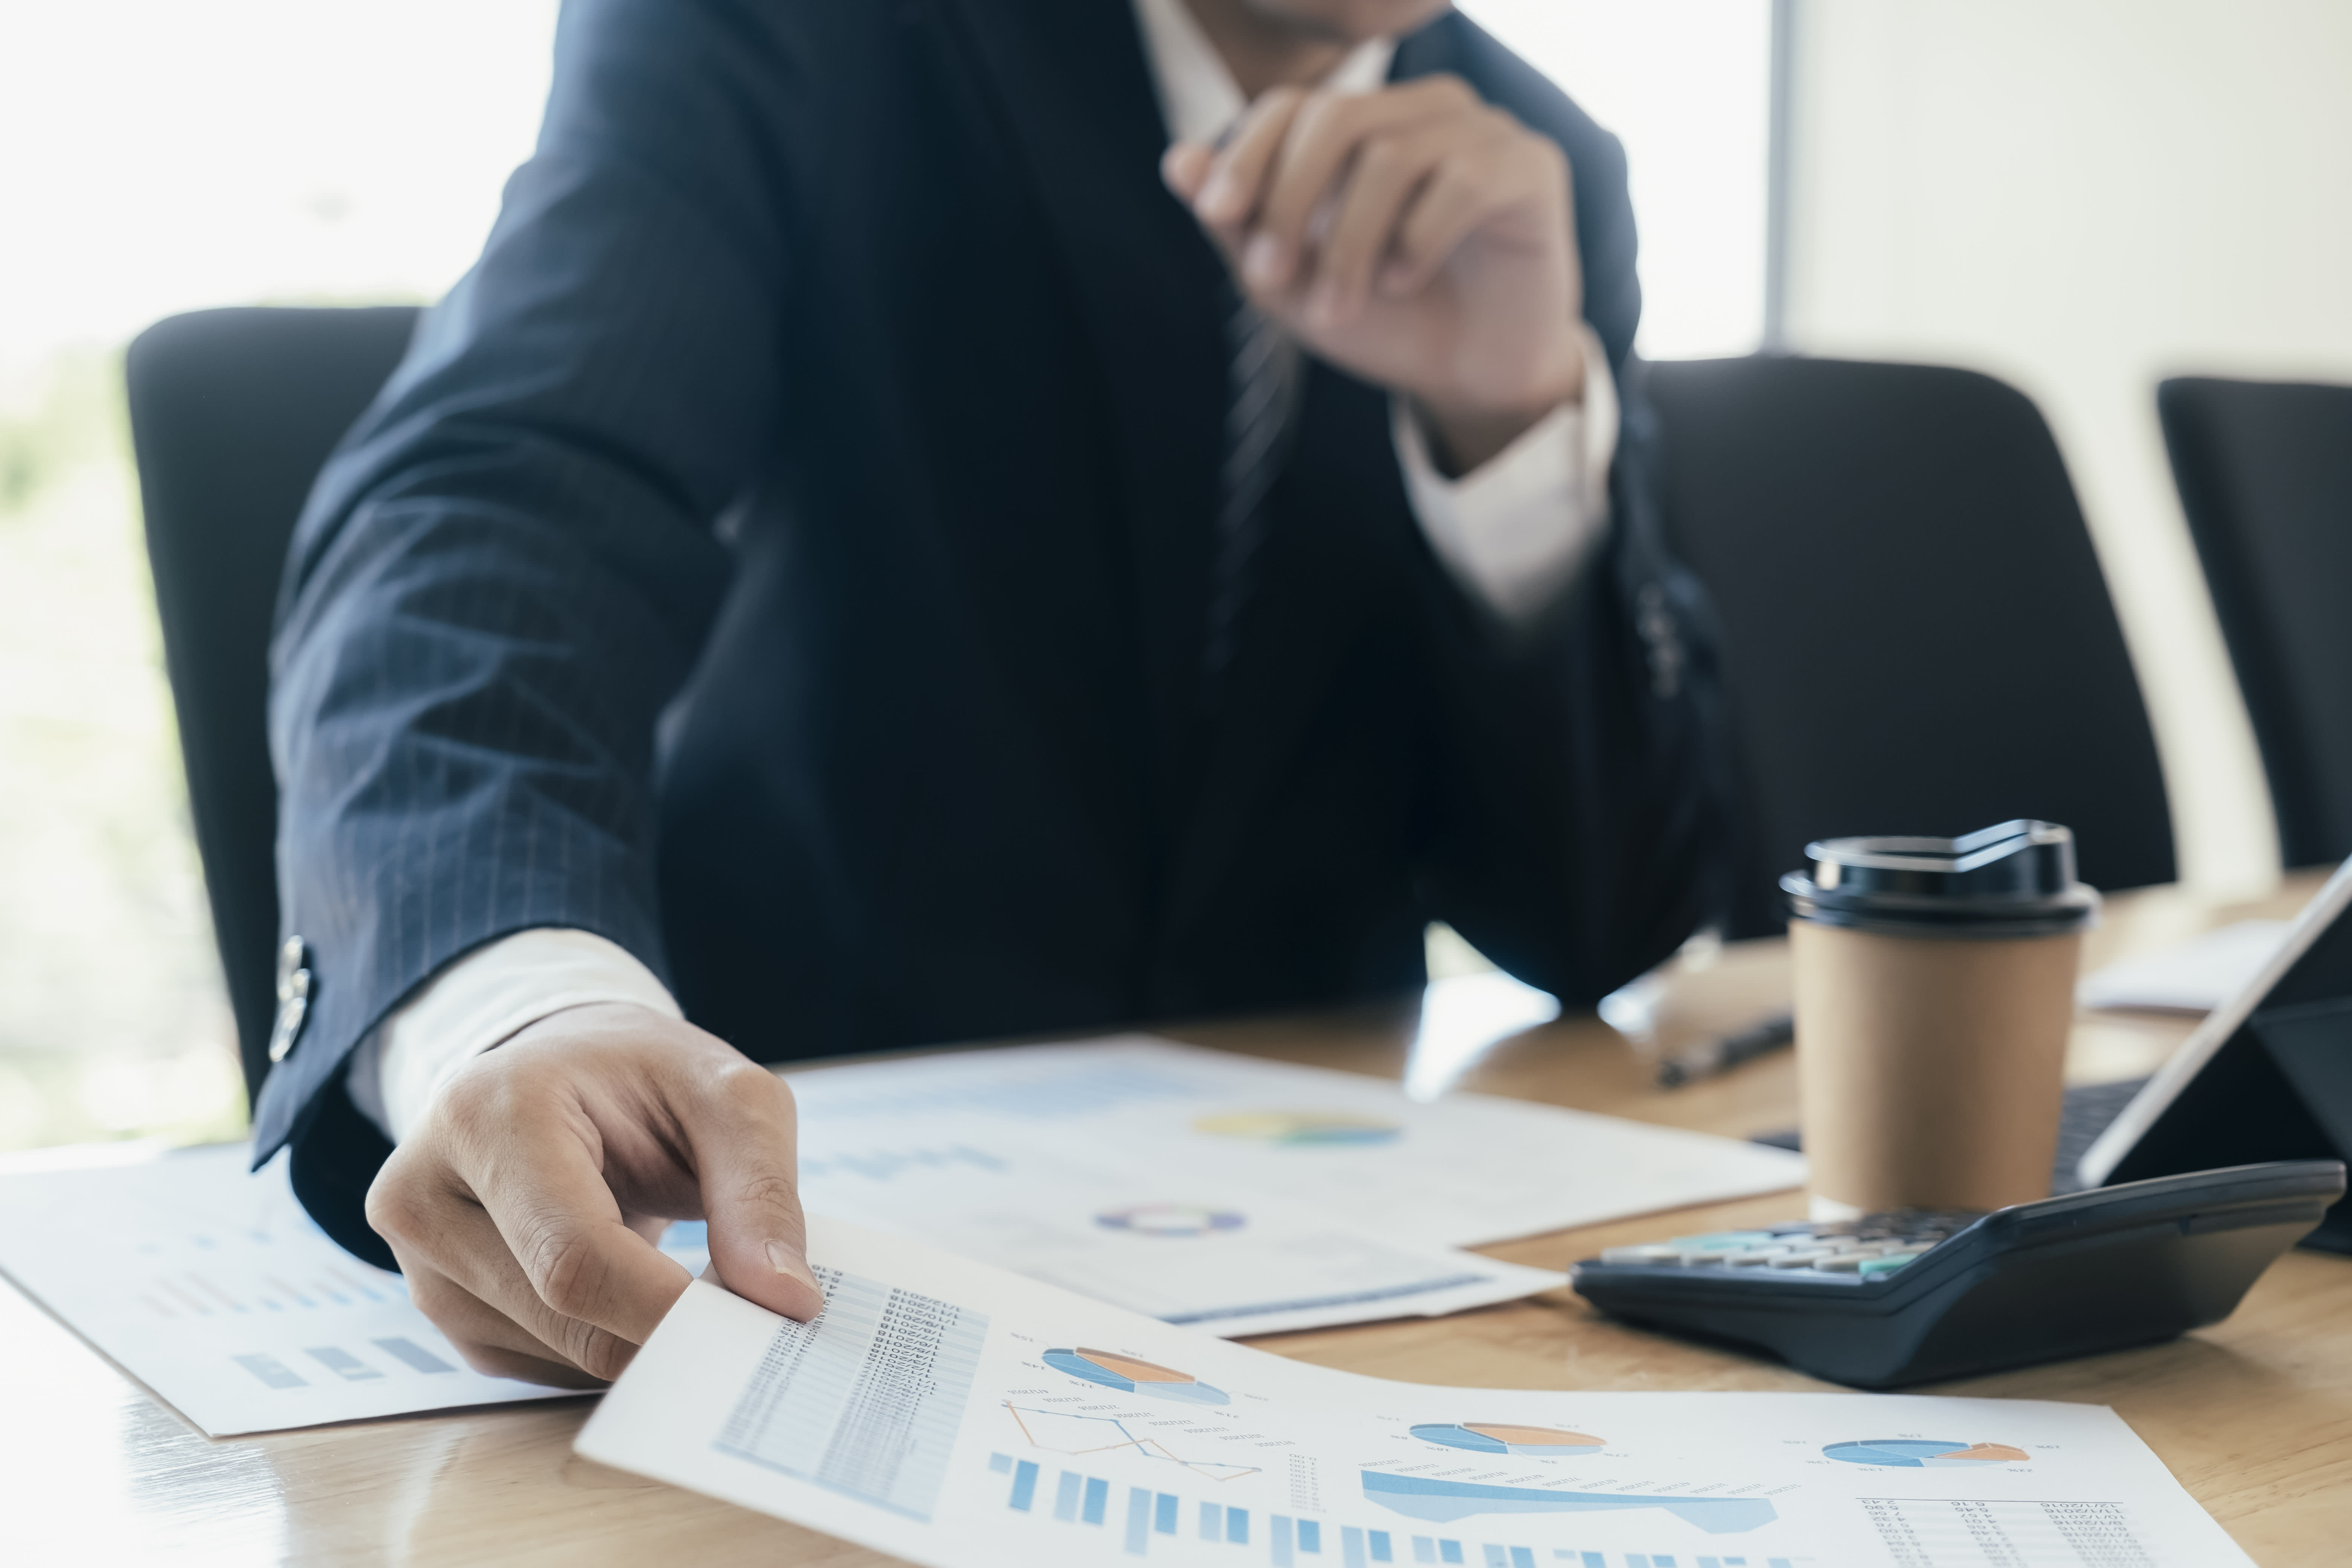 Private equity investments may be coming to your 401(k)